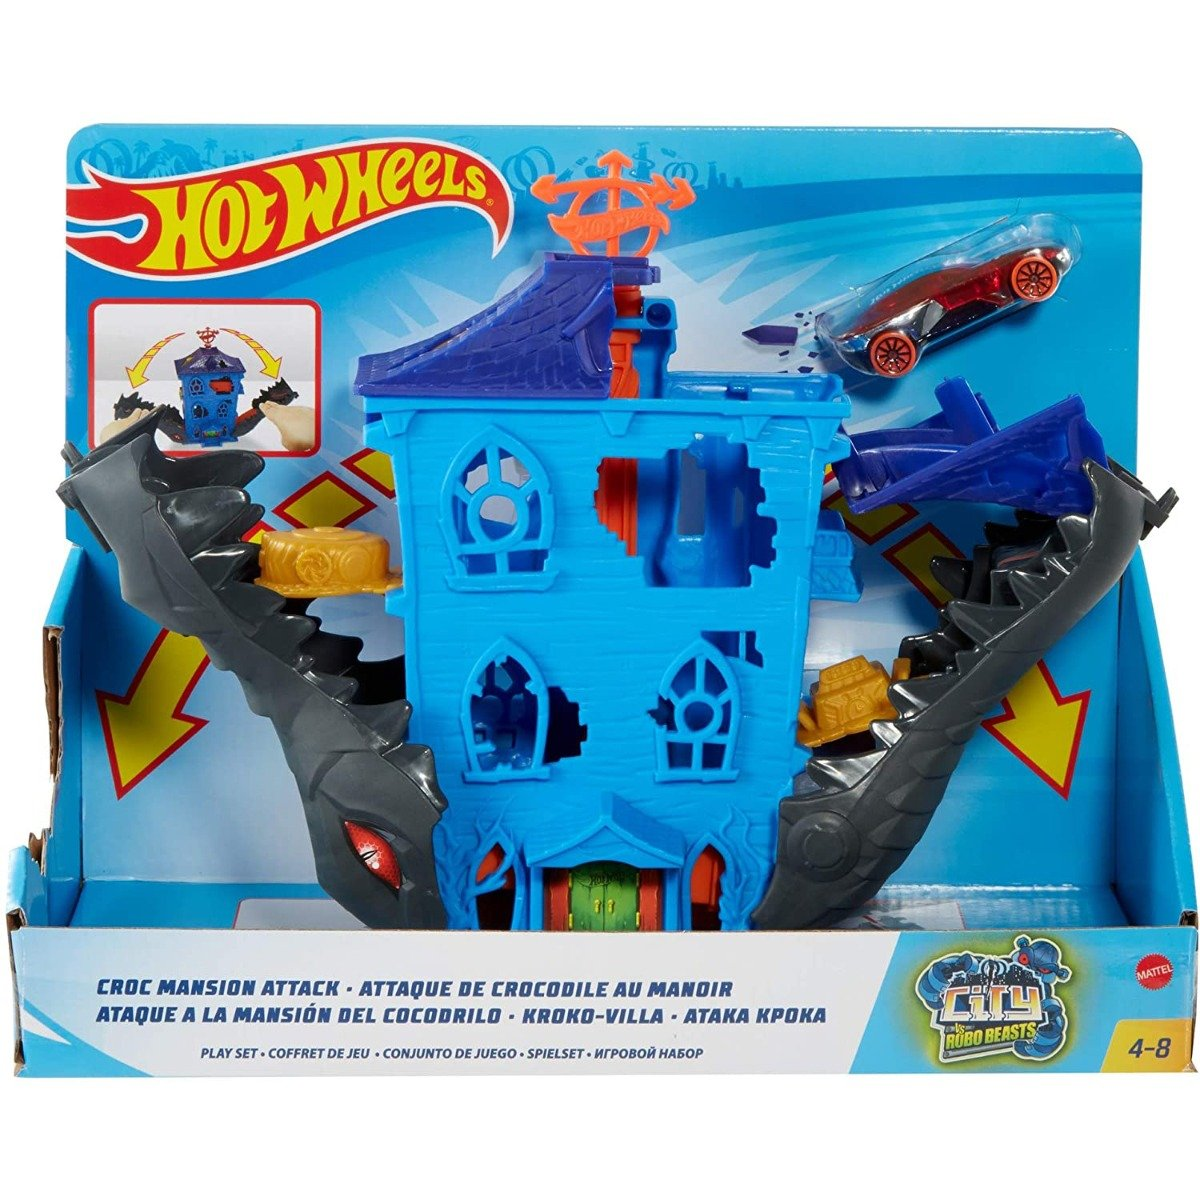 Set de joaca Circuit cu obstacole Hot Wheels City, Croc Mansion Attack (GJK91)